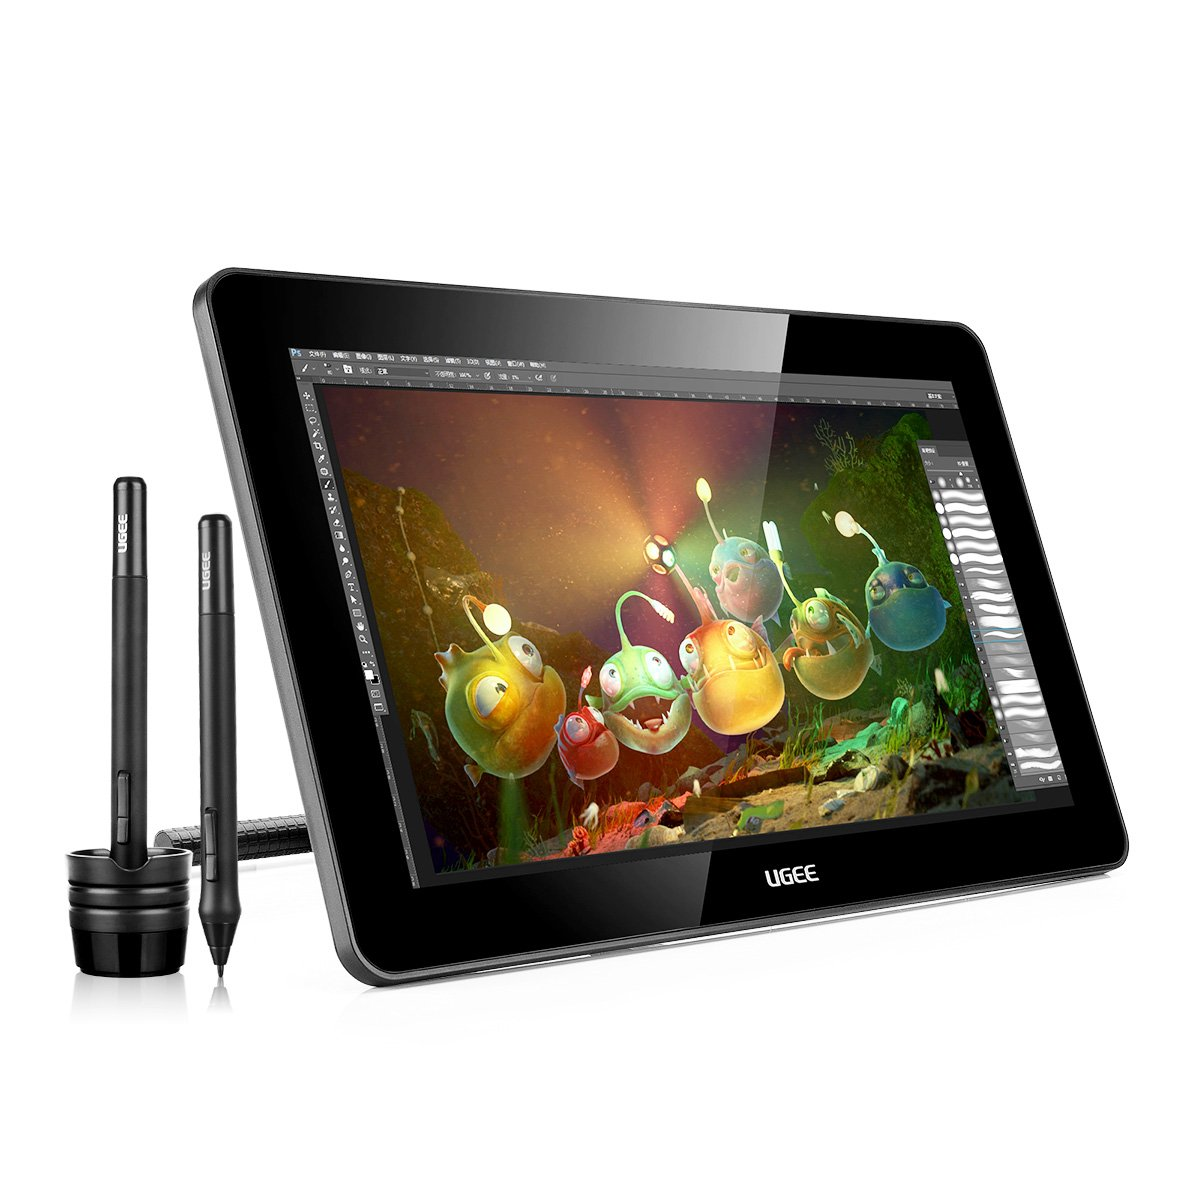 Ugee 15.6 Inches HK1560 IPS Display Graphics Monitor Drawing Pen Tablet with 2x Rechargeable Pen P50S